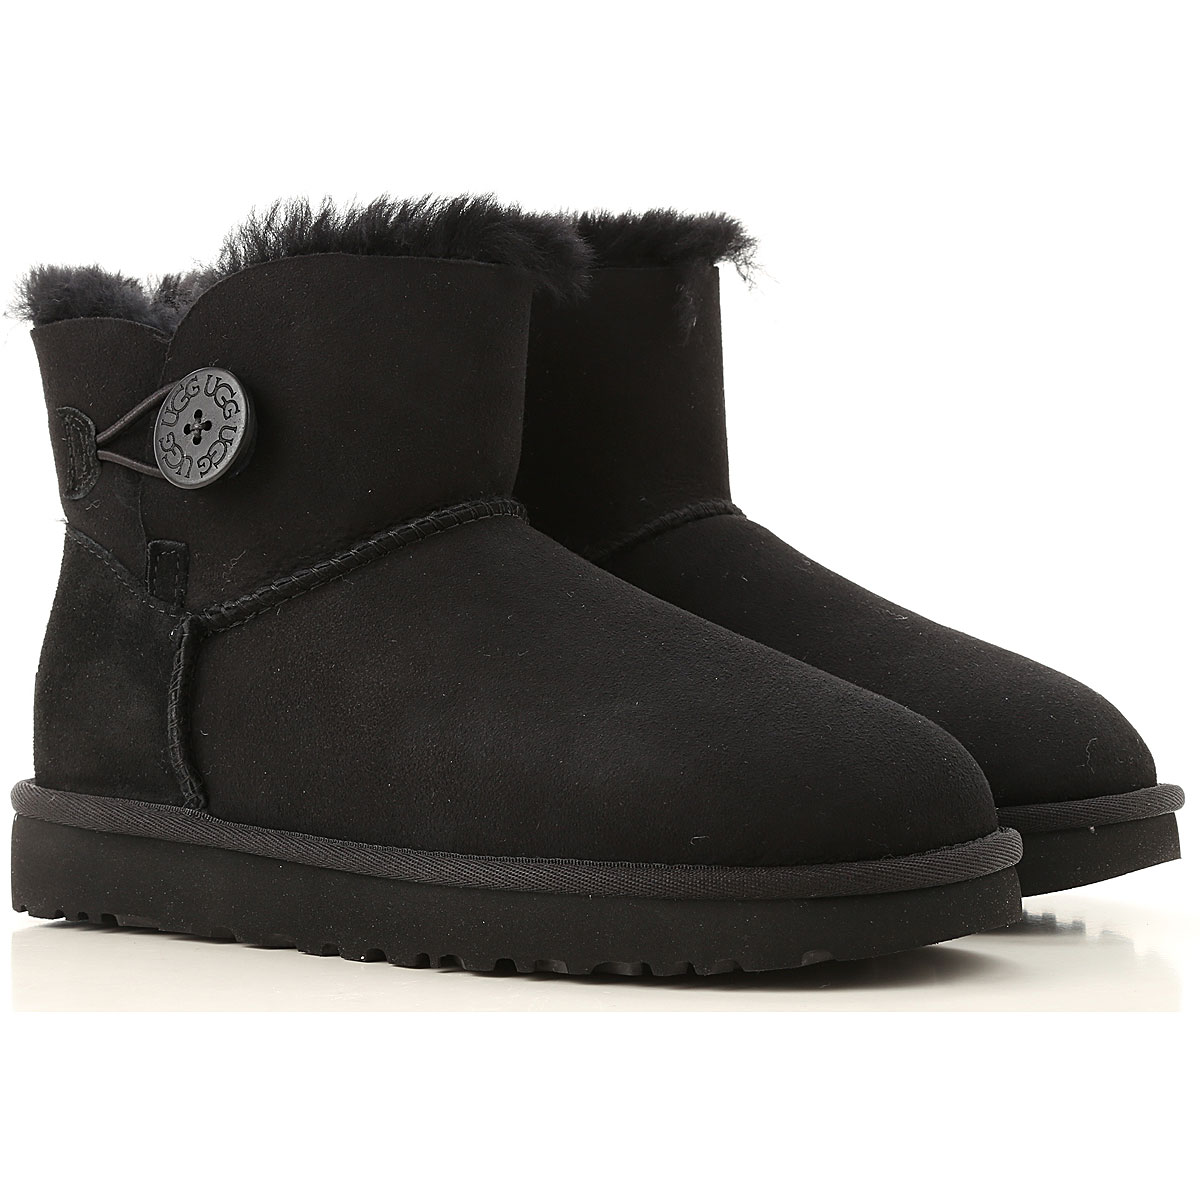 UGG Boots for Women, Booties On Sale, Black, Fur, 2019, USA 5 UK 3 5 EU 36 JAPAN 220 USA 6 UK 4 5 EU 37 JAPAN 230 USA 7 UK 5 5 EU 38 JAPAN 2